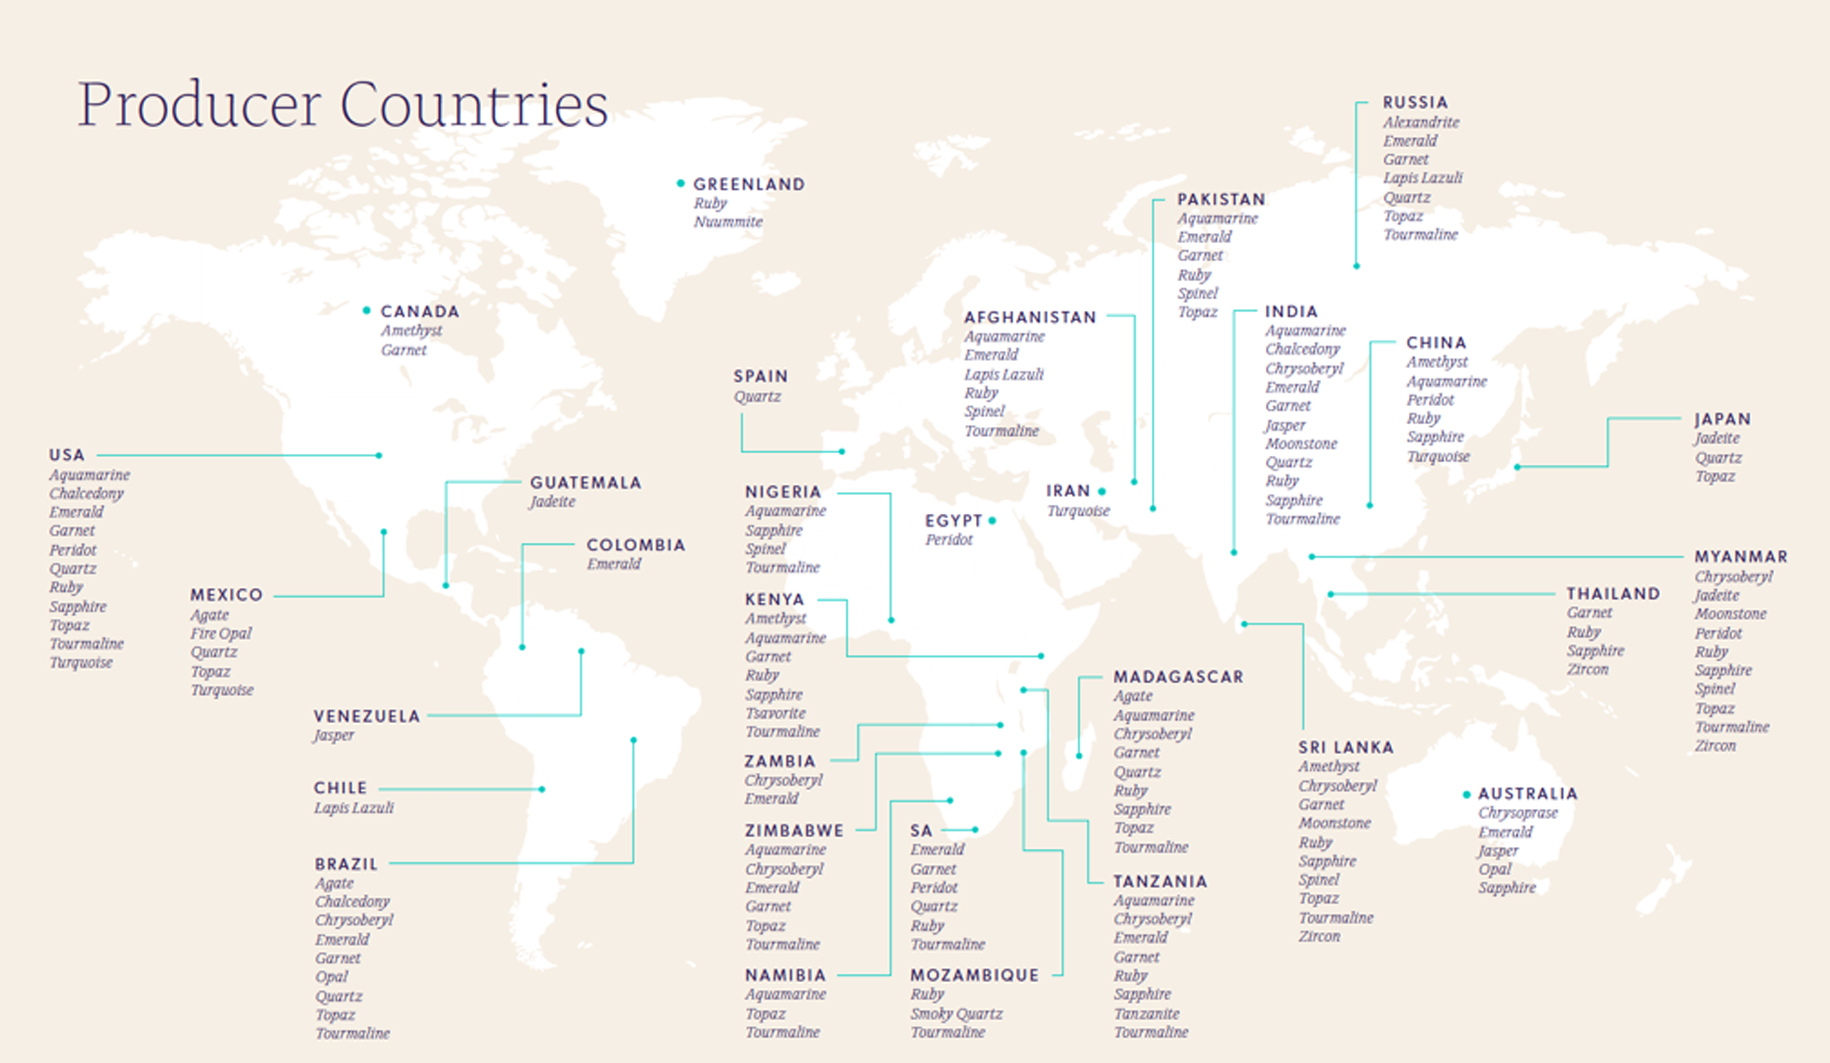 Global distribution of main gemstone producing countries. (Credit: TDi Sustainability, 2020)